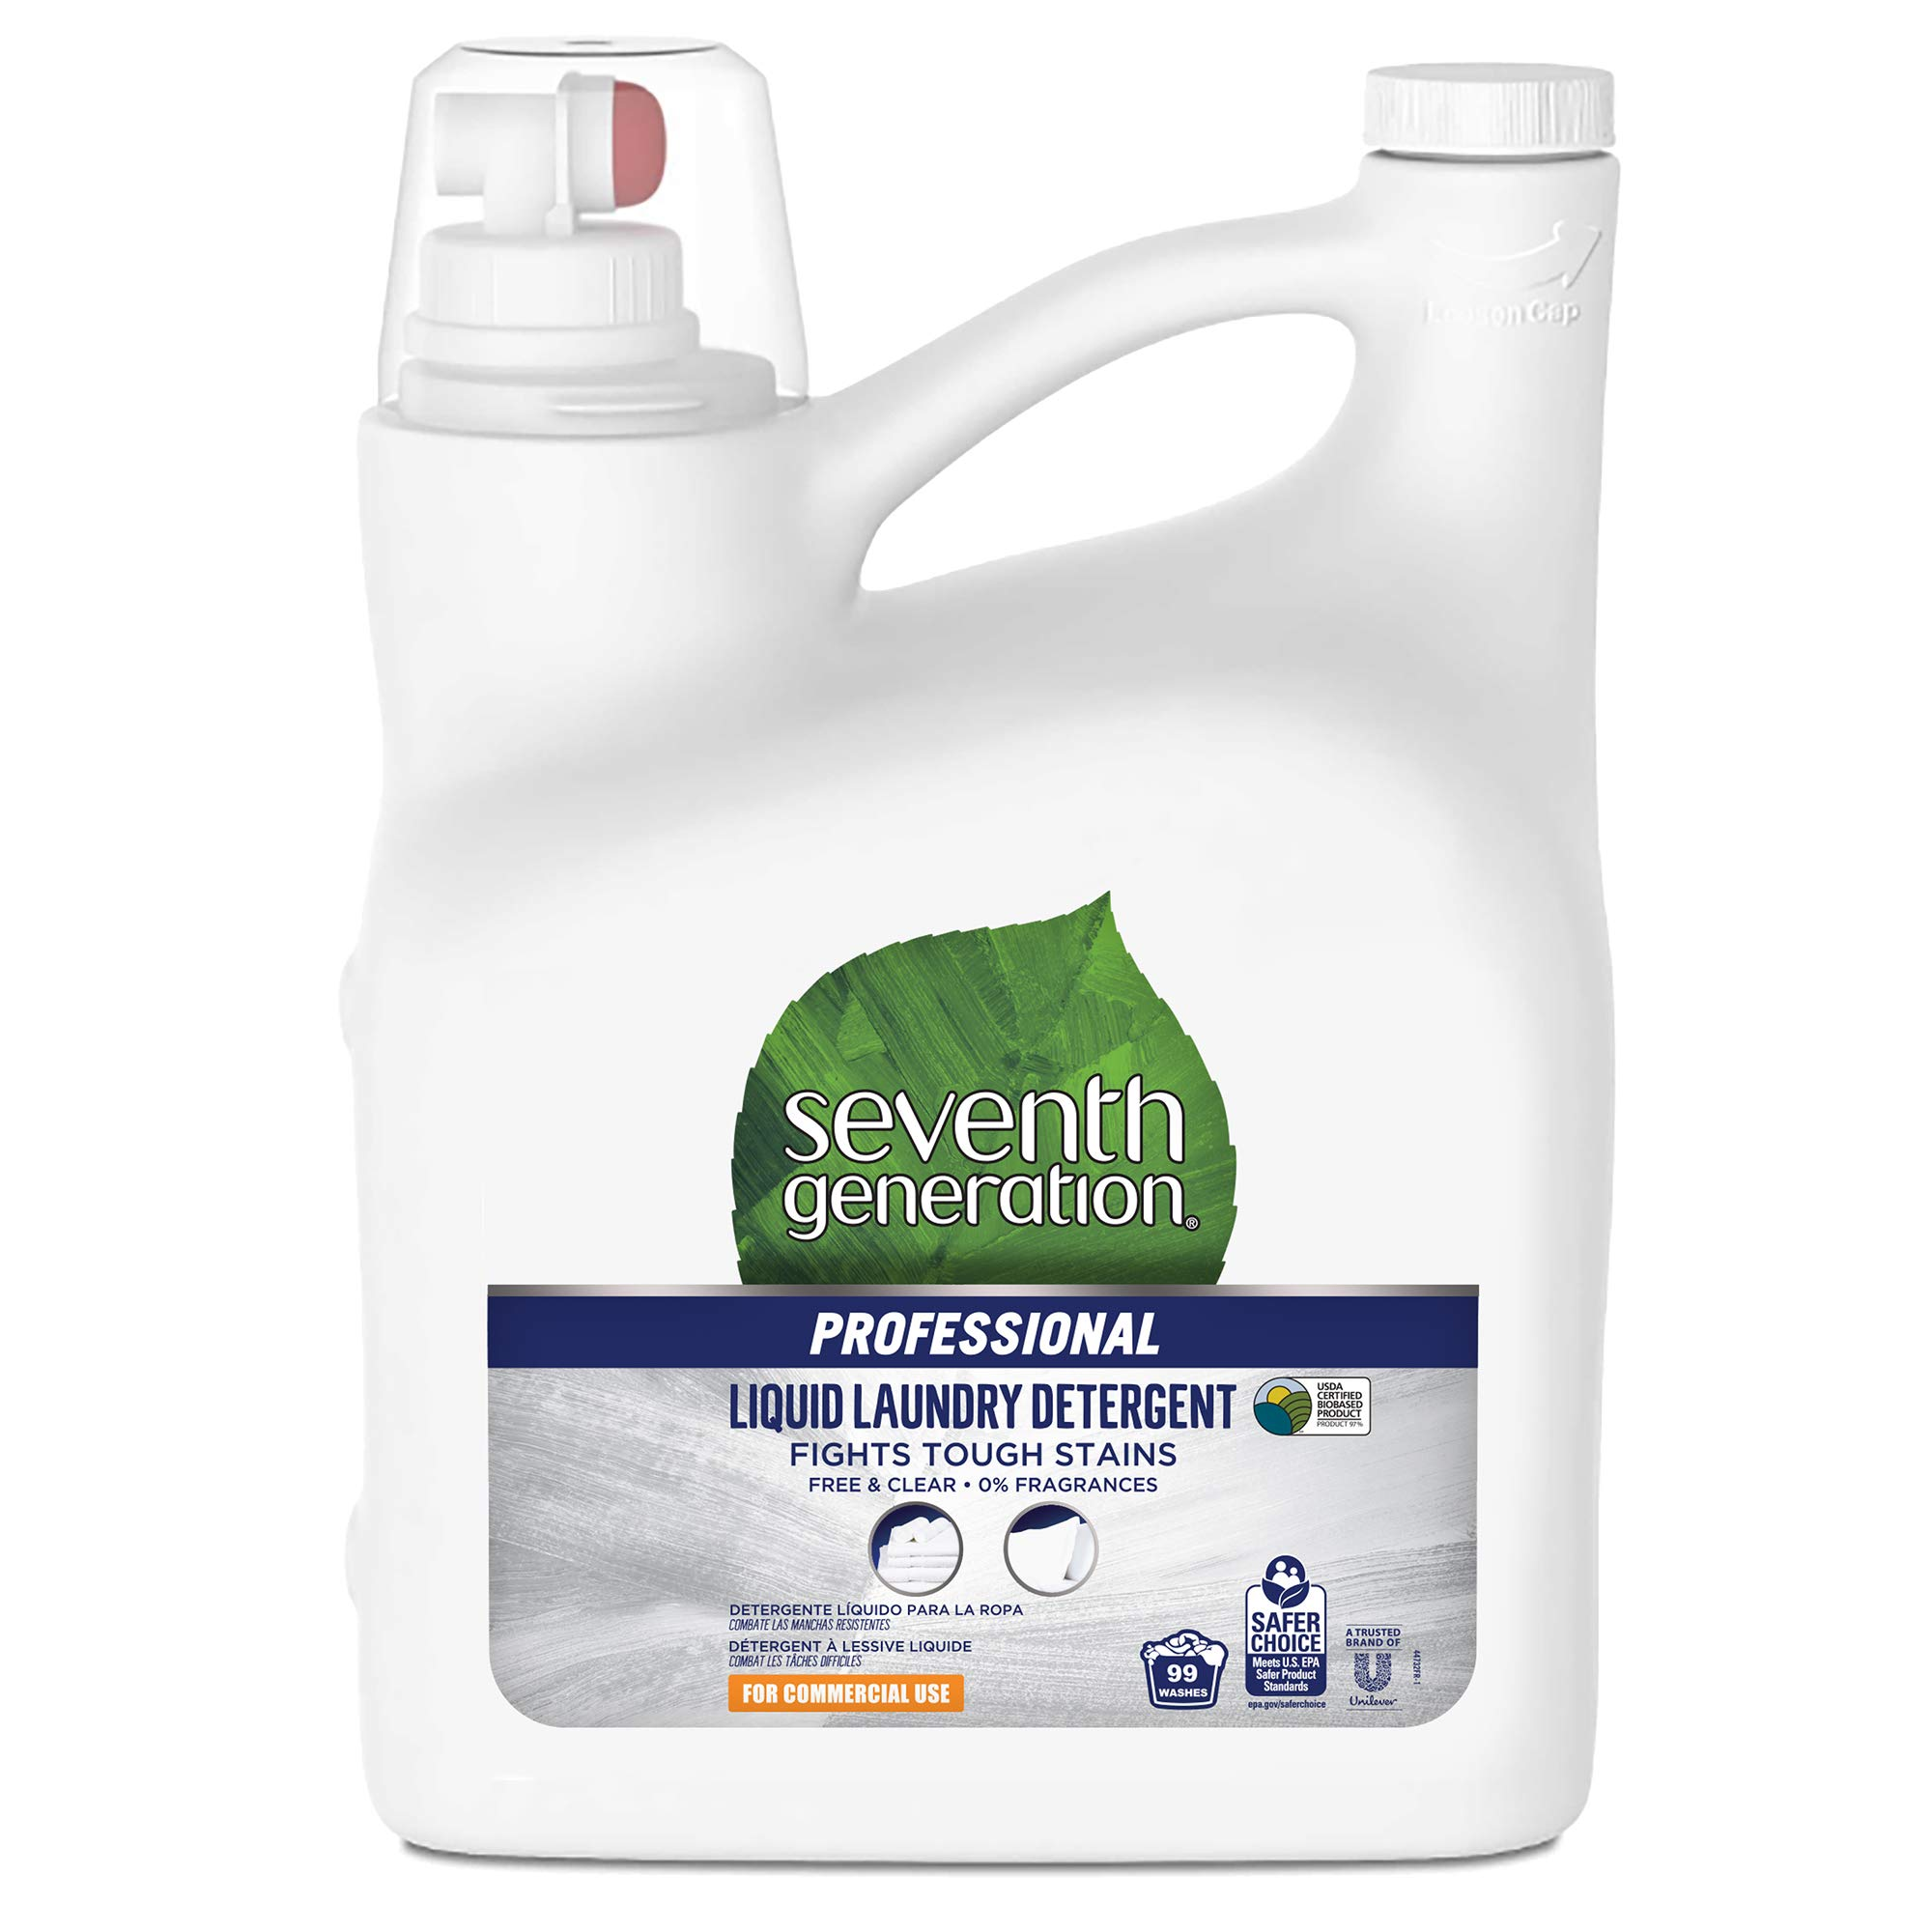 Seventh Generation Professional Liquid Laundry Detergent, Unscented, 150 Fluid Ounce (Pack of 4) by Seventh Generation Professional (Image #1)